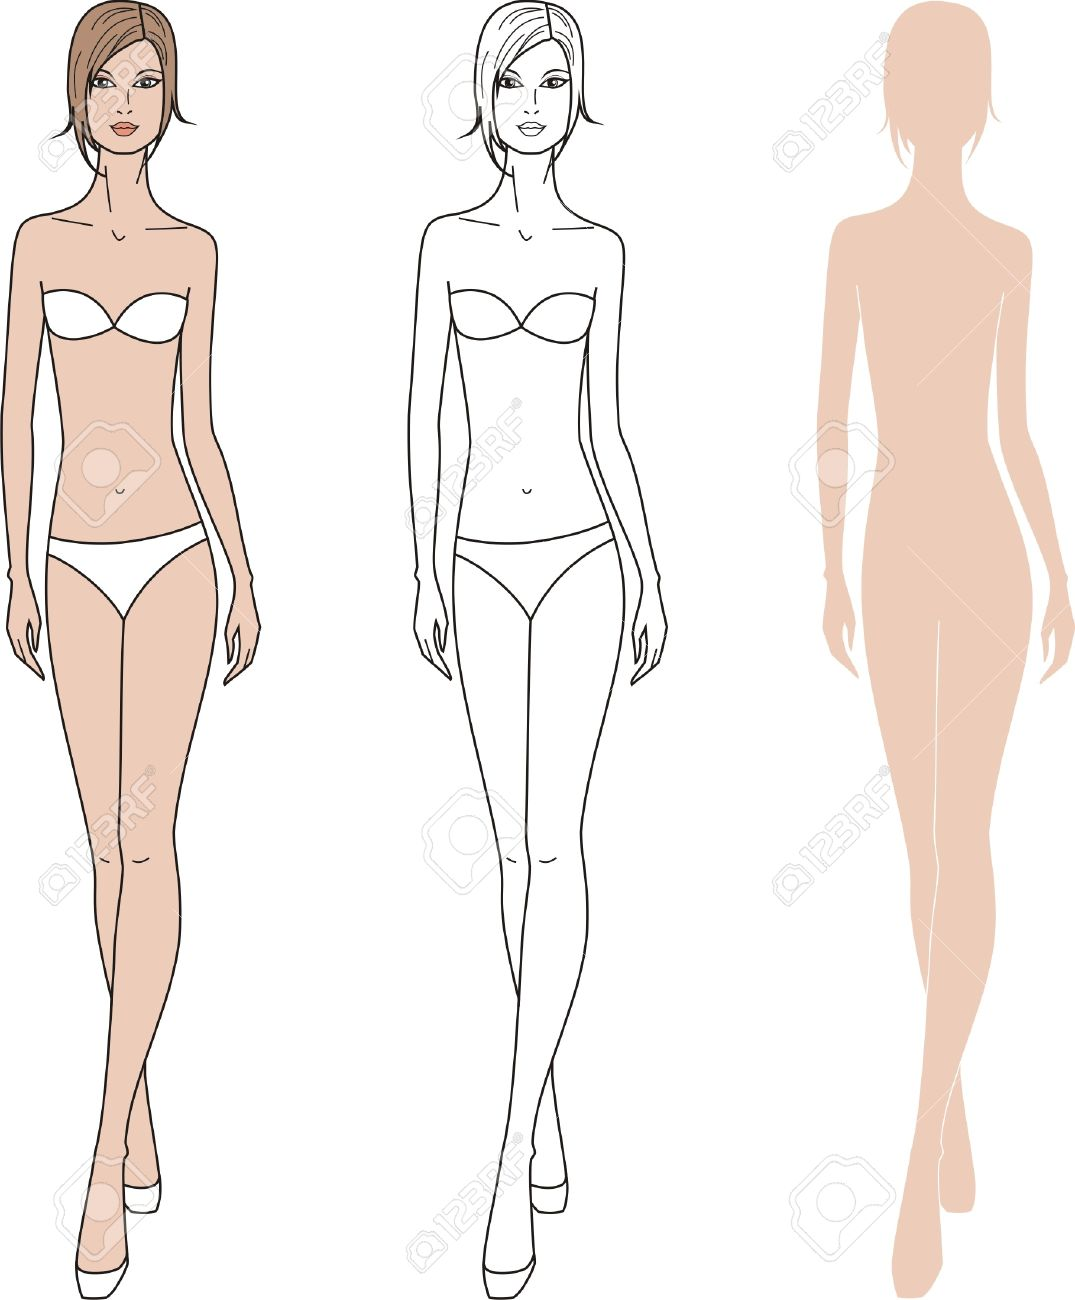 Illustration Of Women S Fashion Figure Three Options Royalty Free